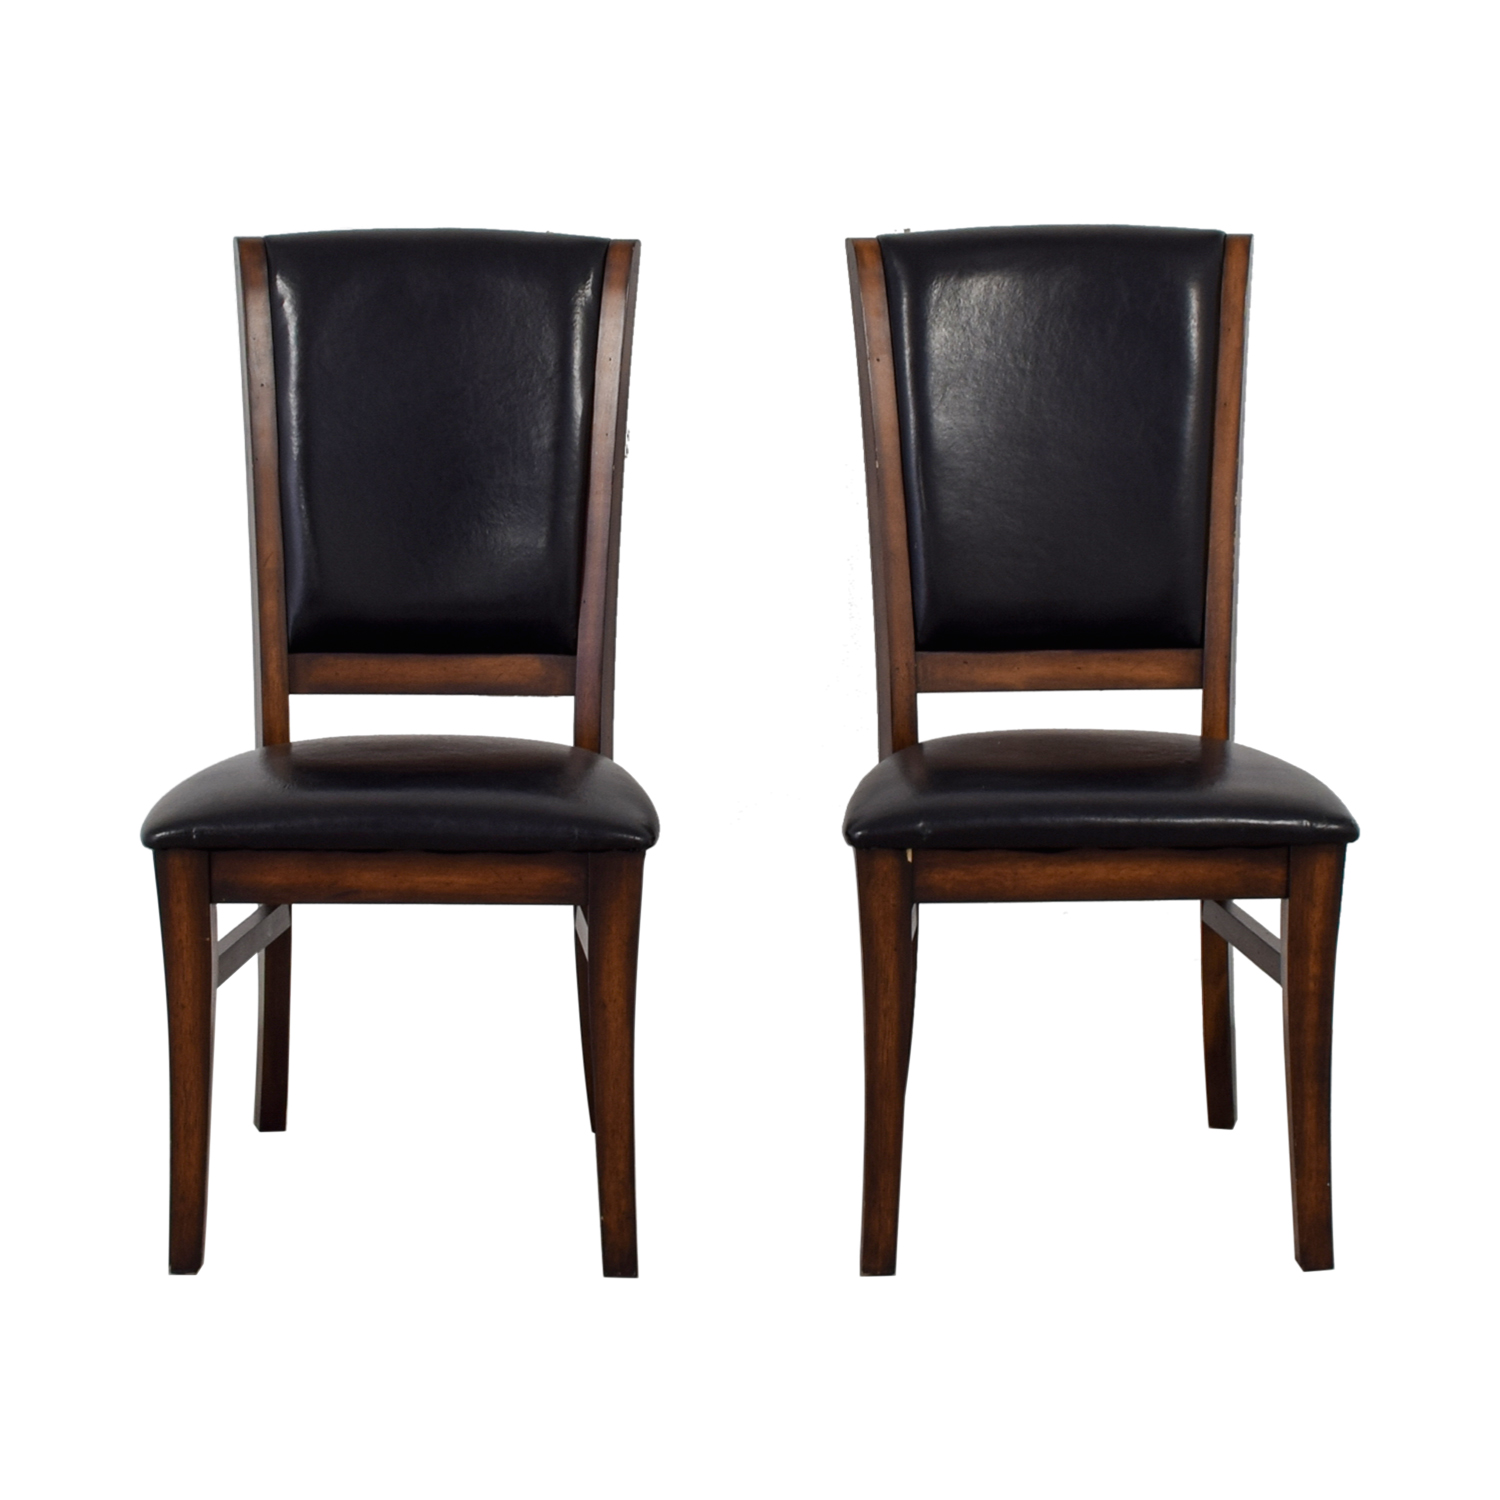 Leather and Wood Dining Chairs second hand